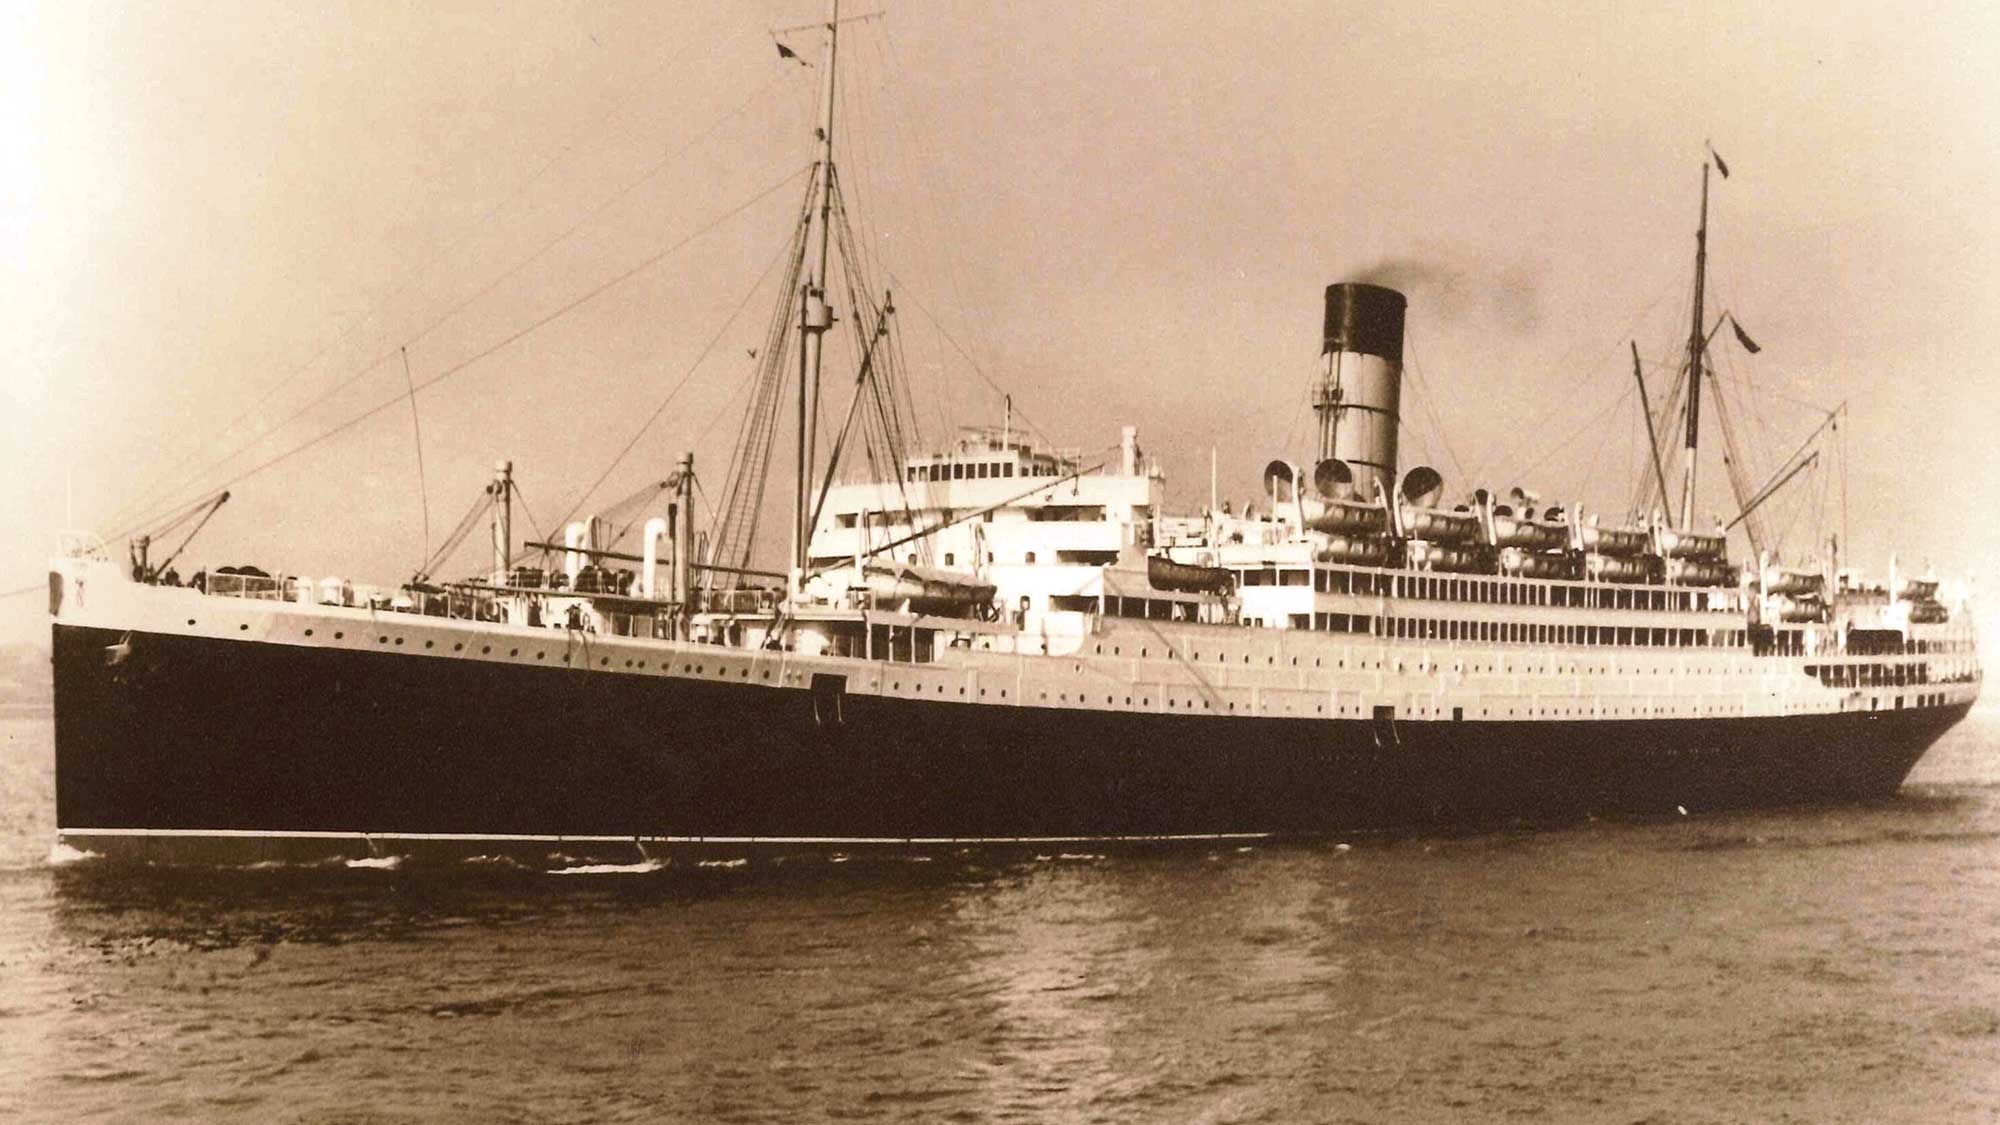 """Cunard Line's Laconia's 127-day, full world cruise in 1922-23 cost $1,500 """"for the full WC including excursions."""" Described as the """"largest and finest steamer that ever went around the world,"""" advertising for the sailing said: """"Our representatives in all principal ports in foreign lands are ready for your reception and entertainment."""""""